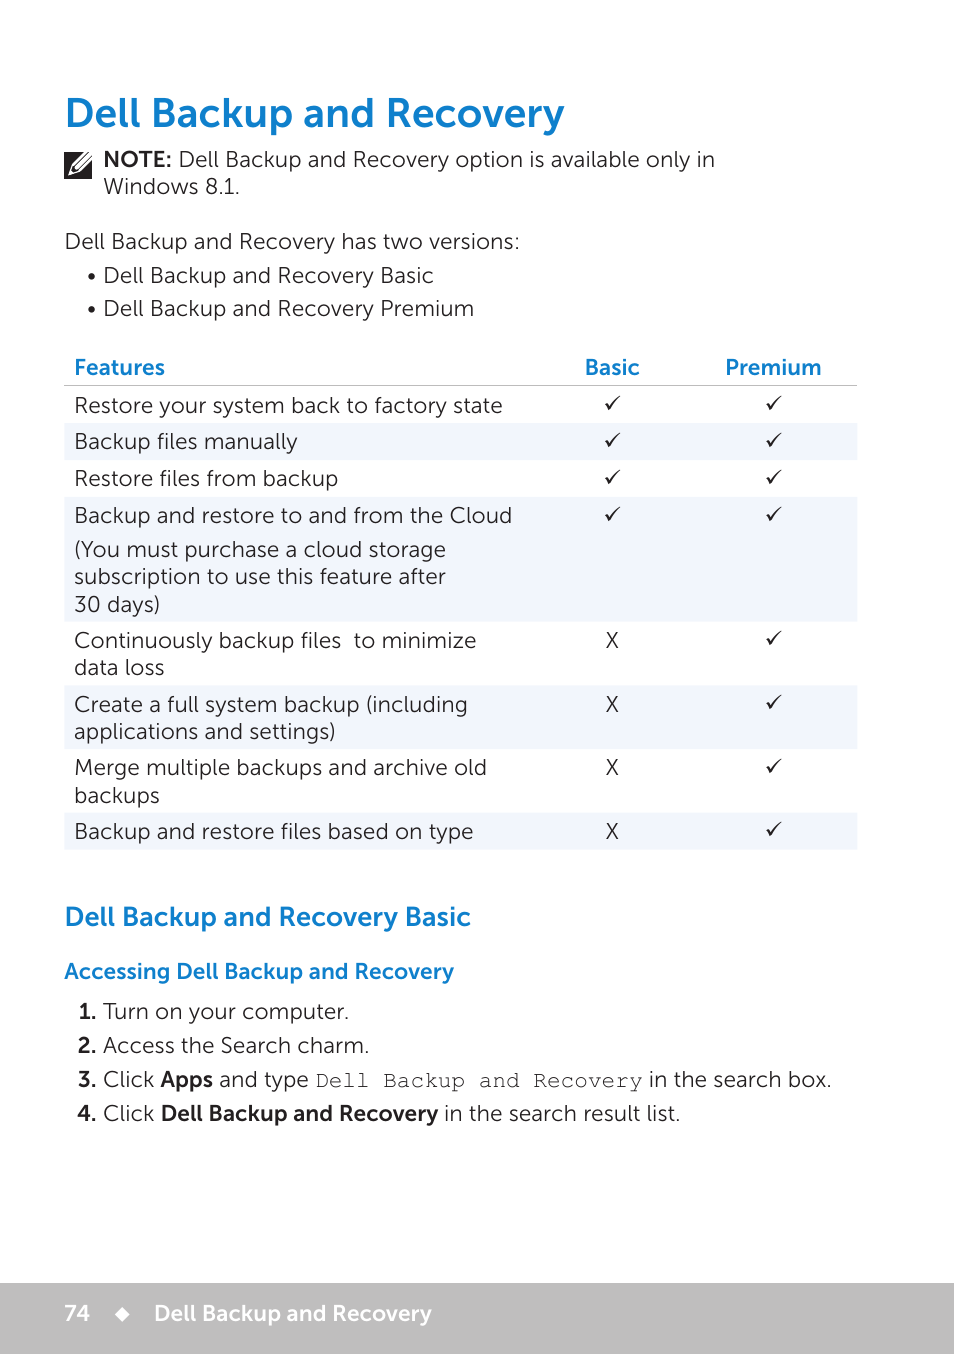 dell backup and recovery windows 8.1 factory image